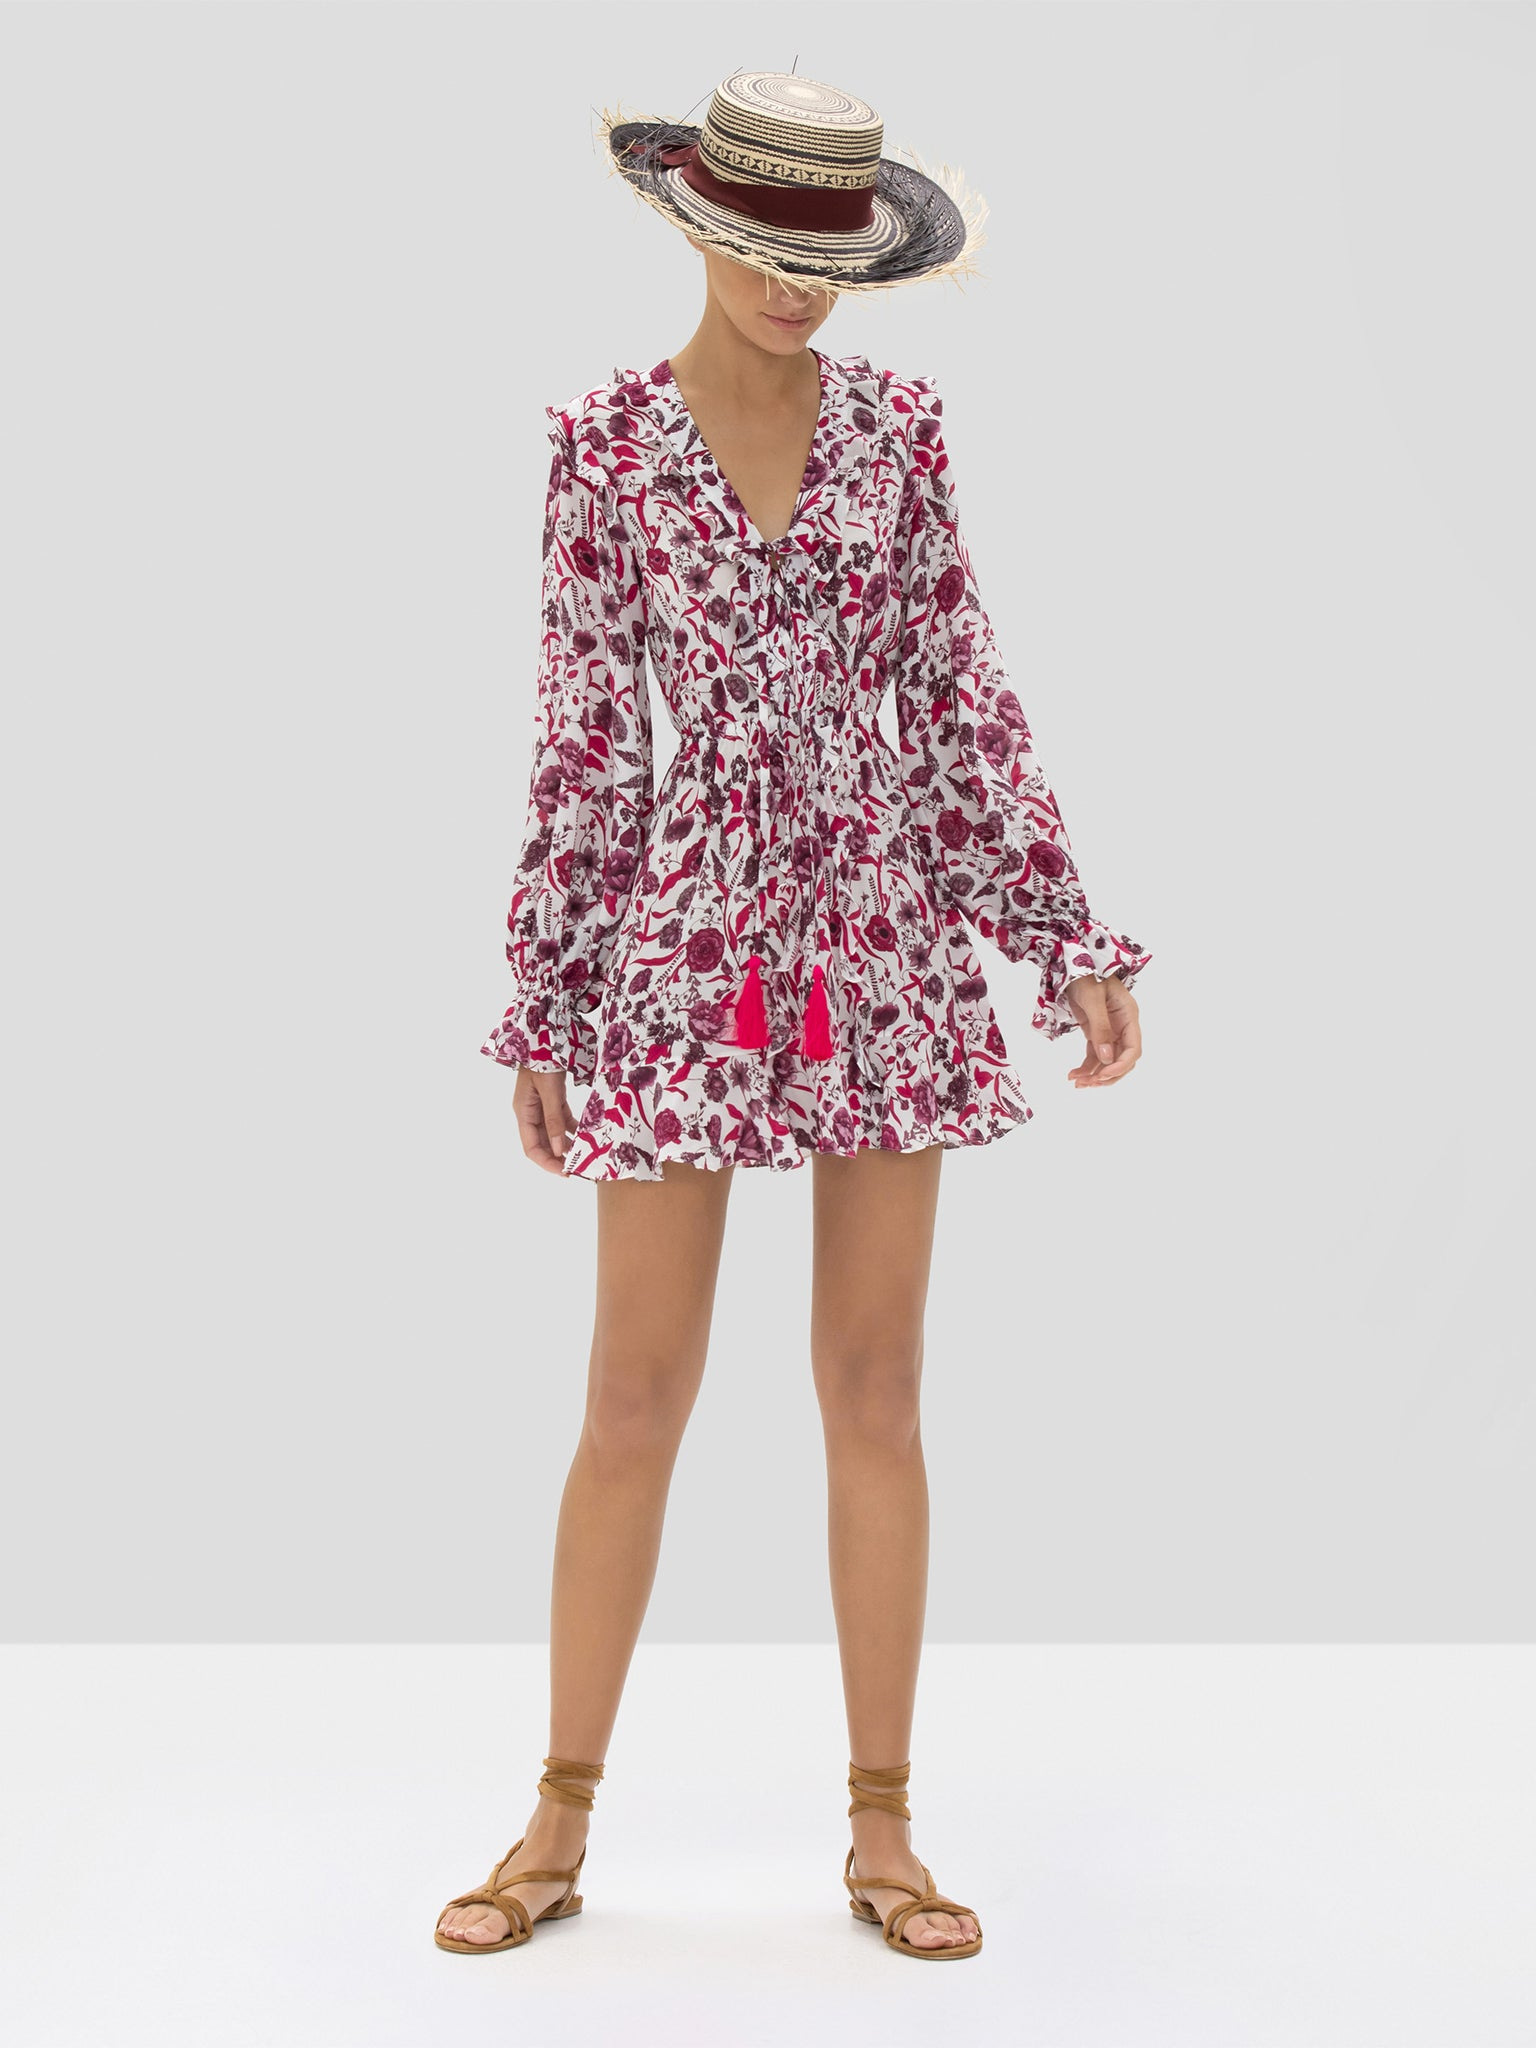 Alexis Kosma Dress in Berry Floral from Spring Summer 2020